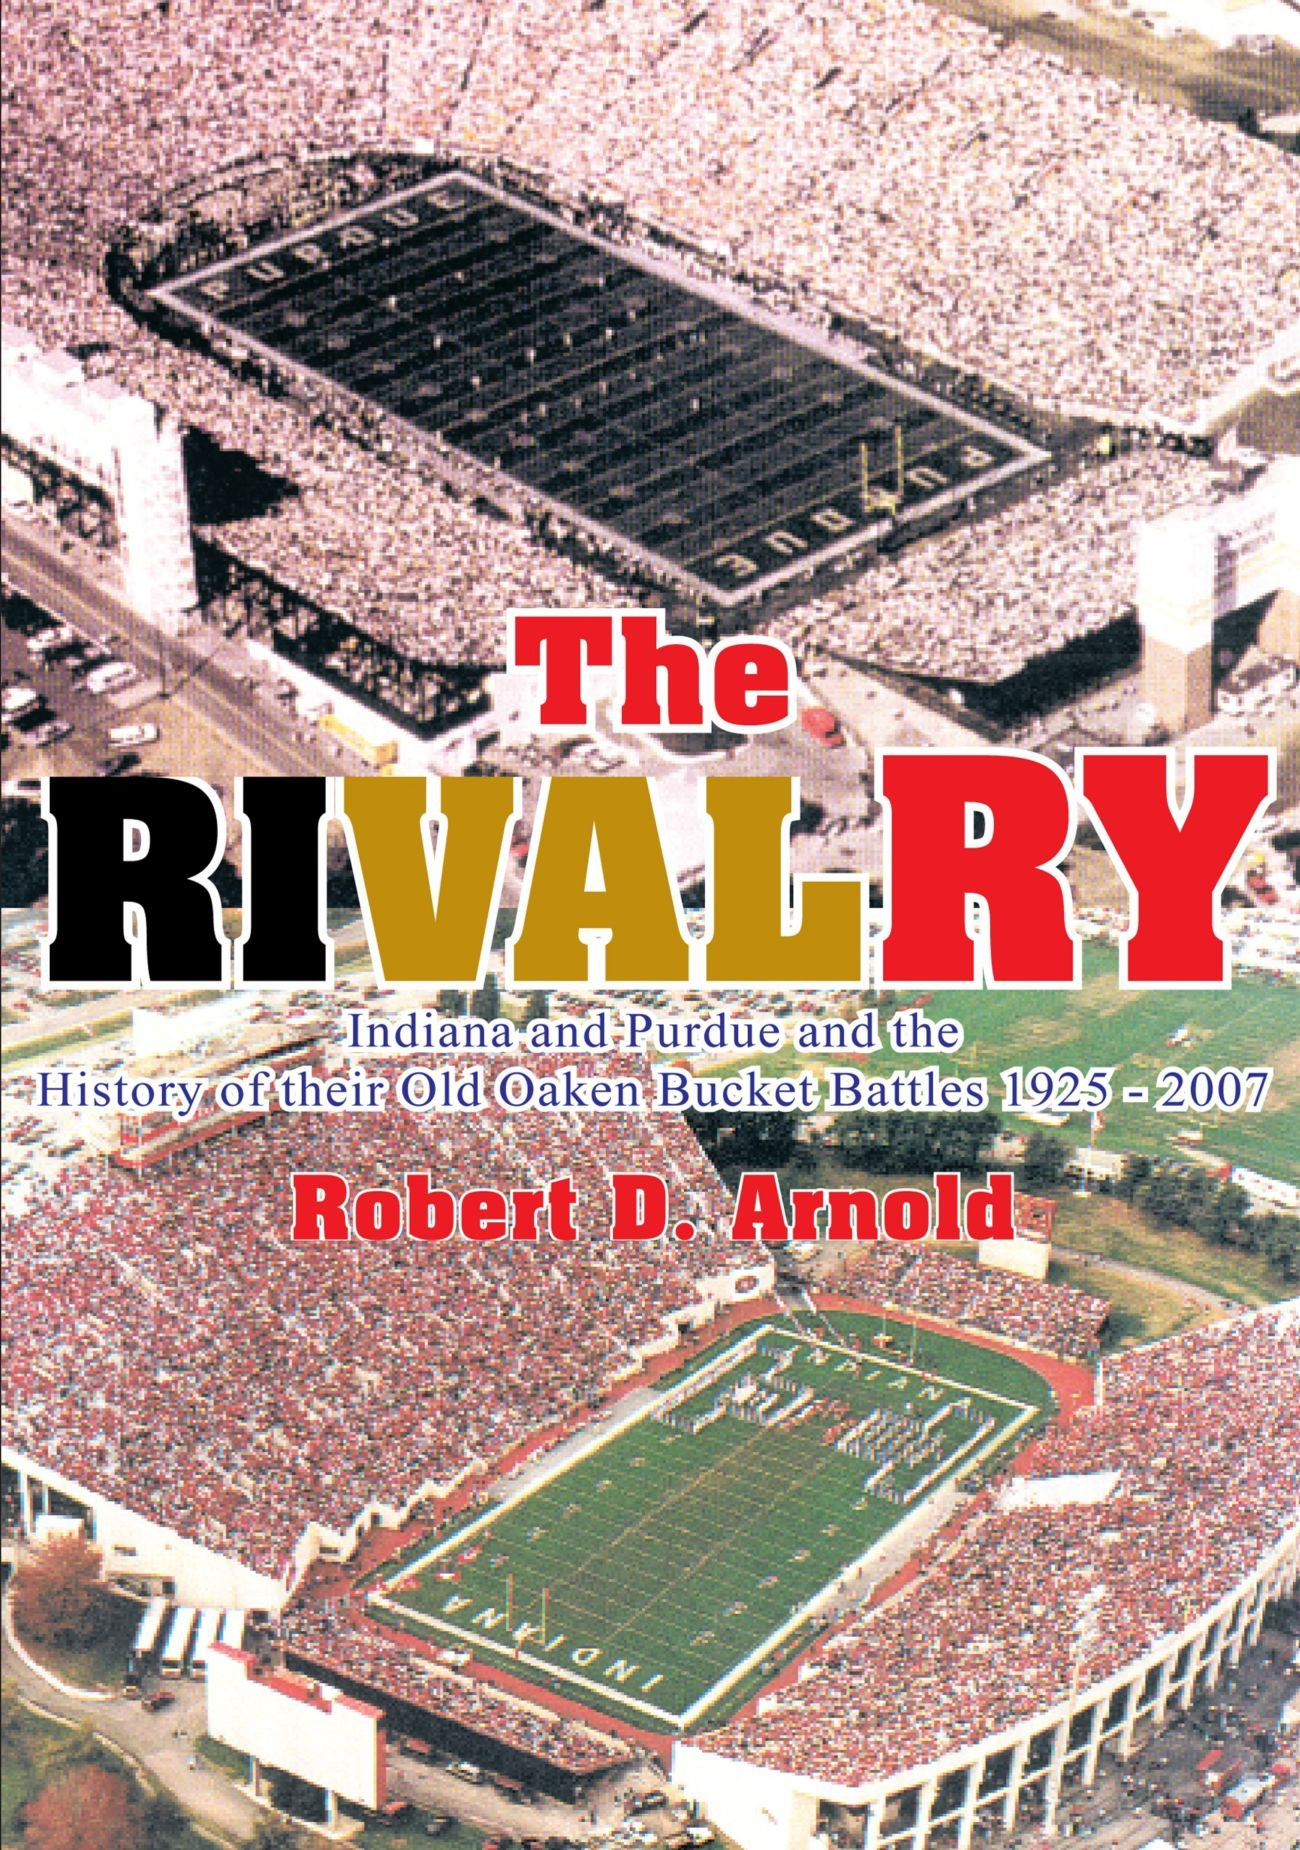 The Rivalry: Indiana and Purdue and the History of their Old Oaken Bucket Battles 1925 - 2007